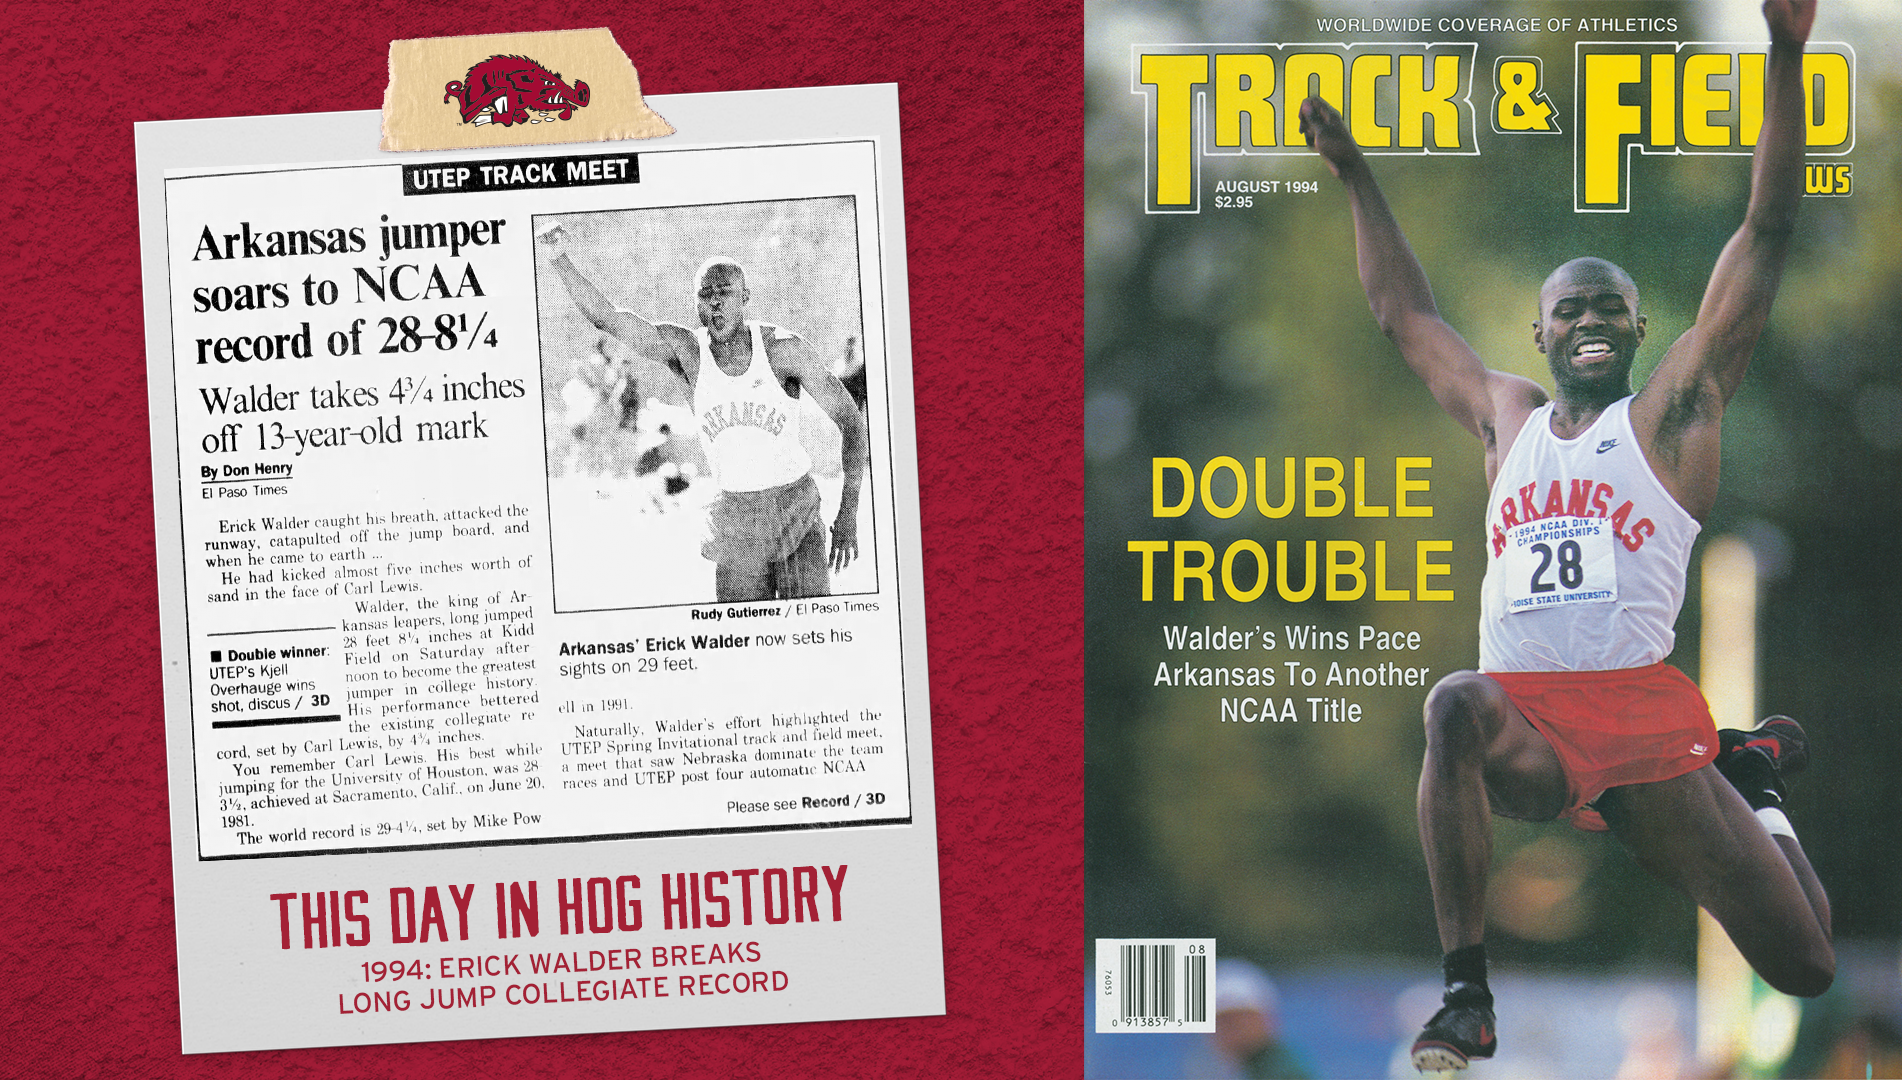 On This Day: Walder's Collegiate Long Jump Record